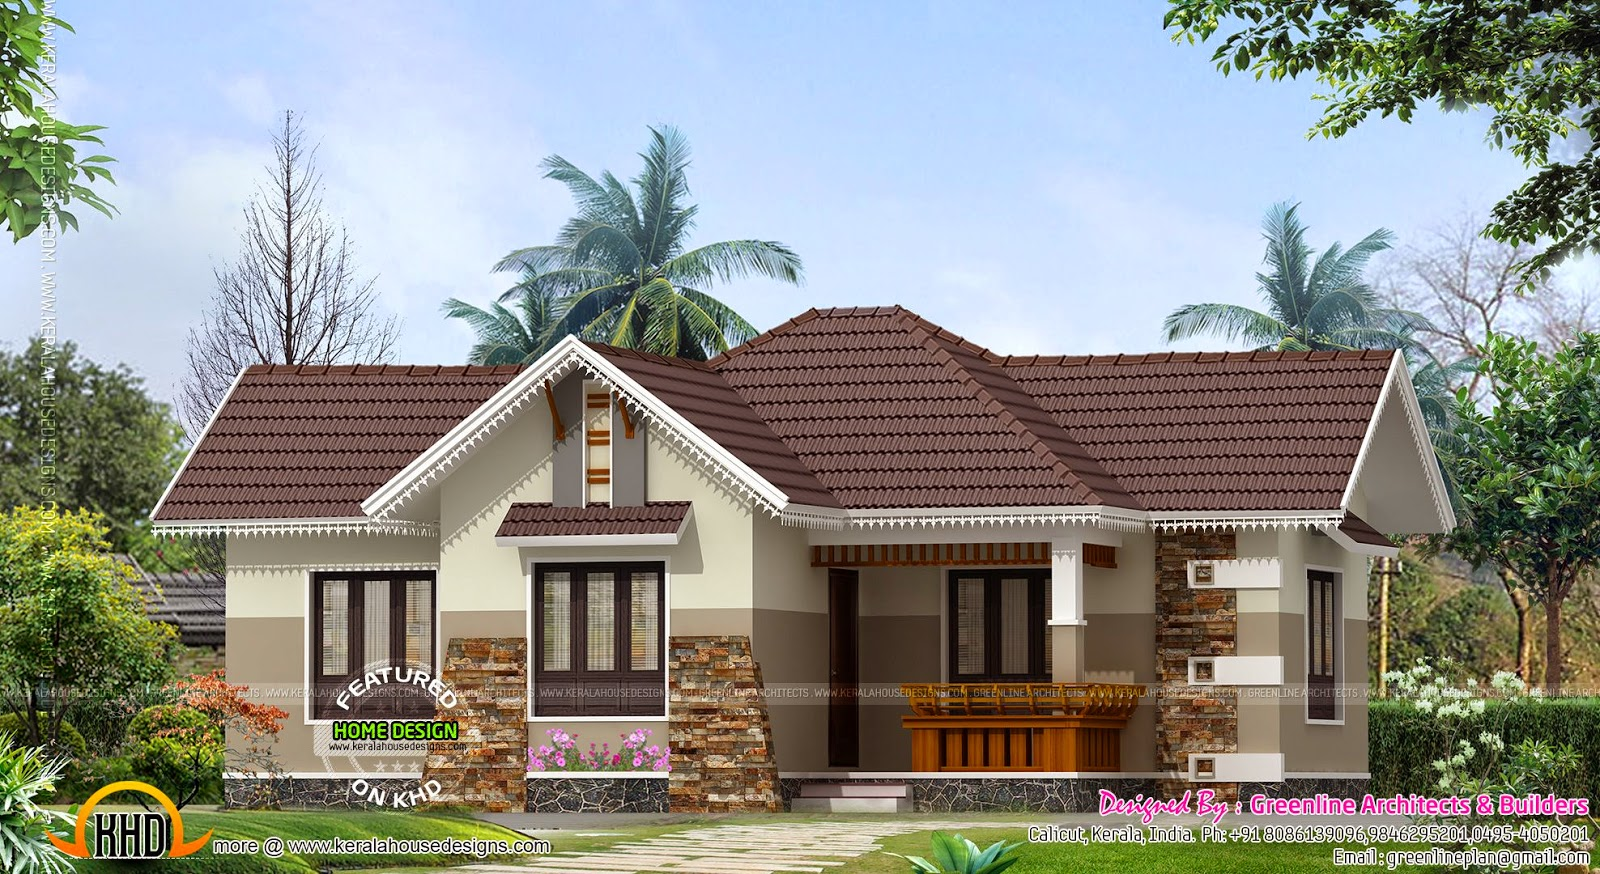 2014 kerala home design and floor plans for Interior design ideas for small homes in kerala